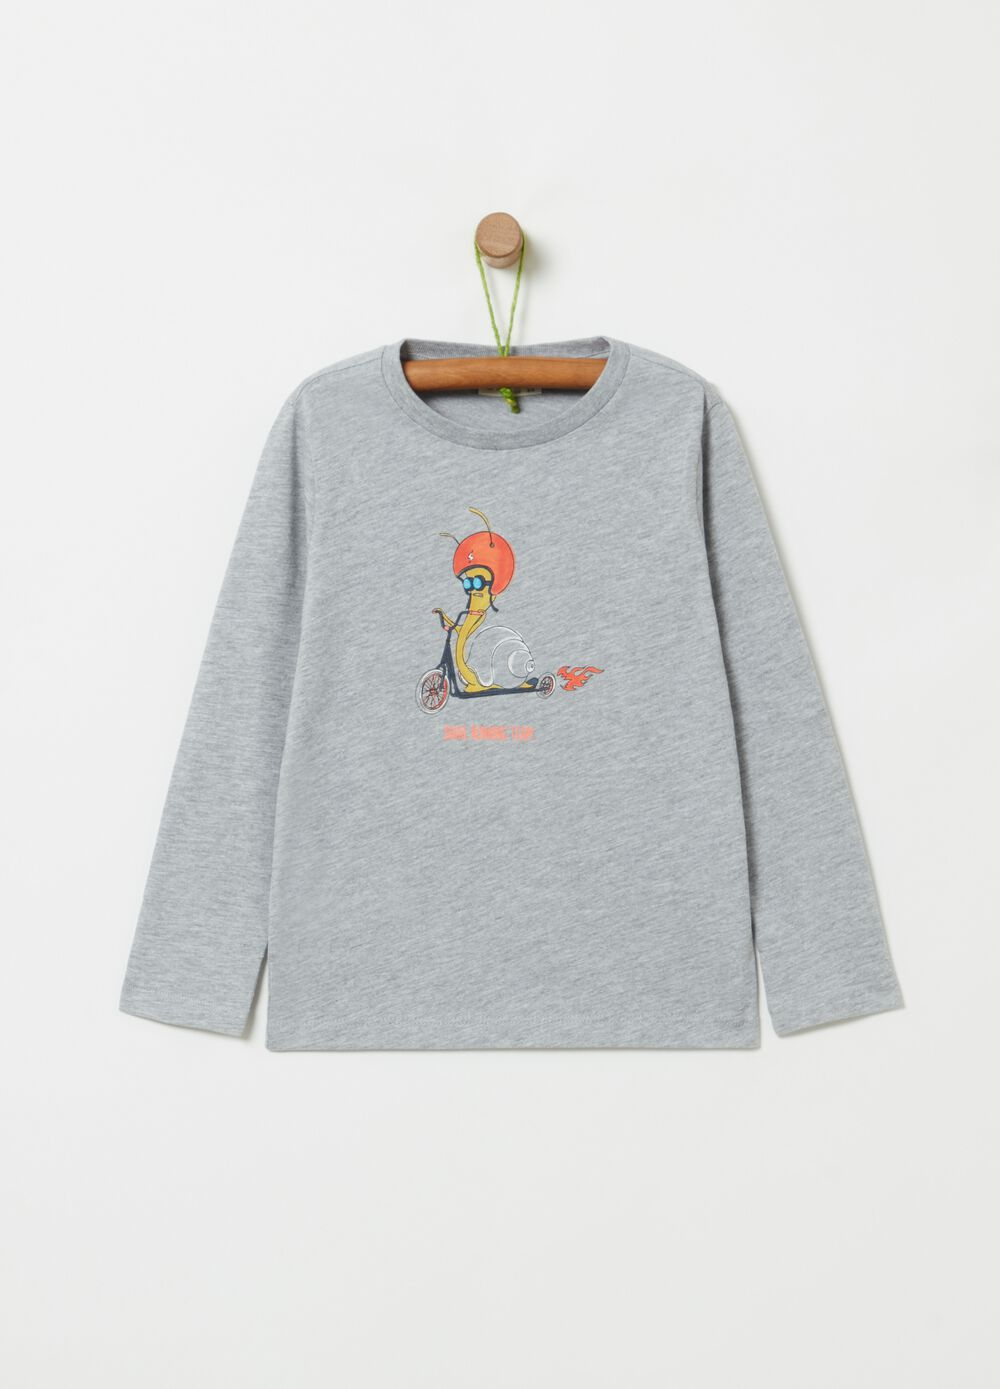 Viscose and organic cotton T-shirt with print